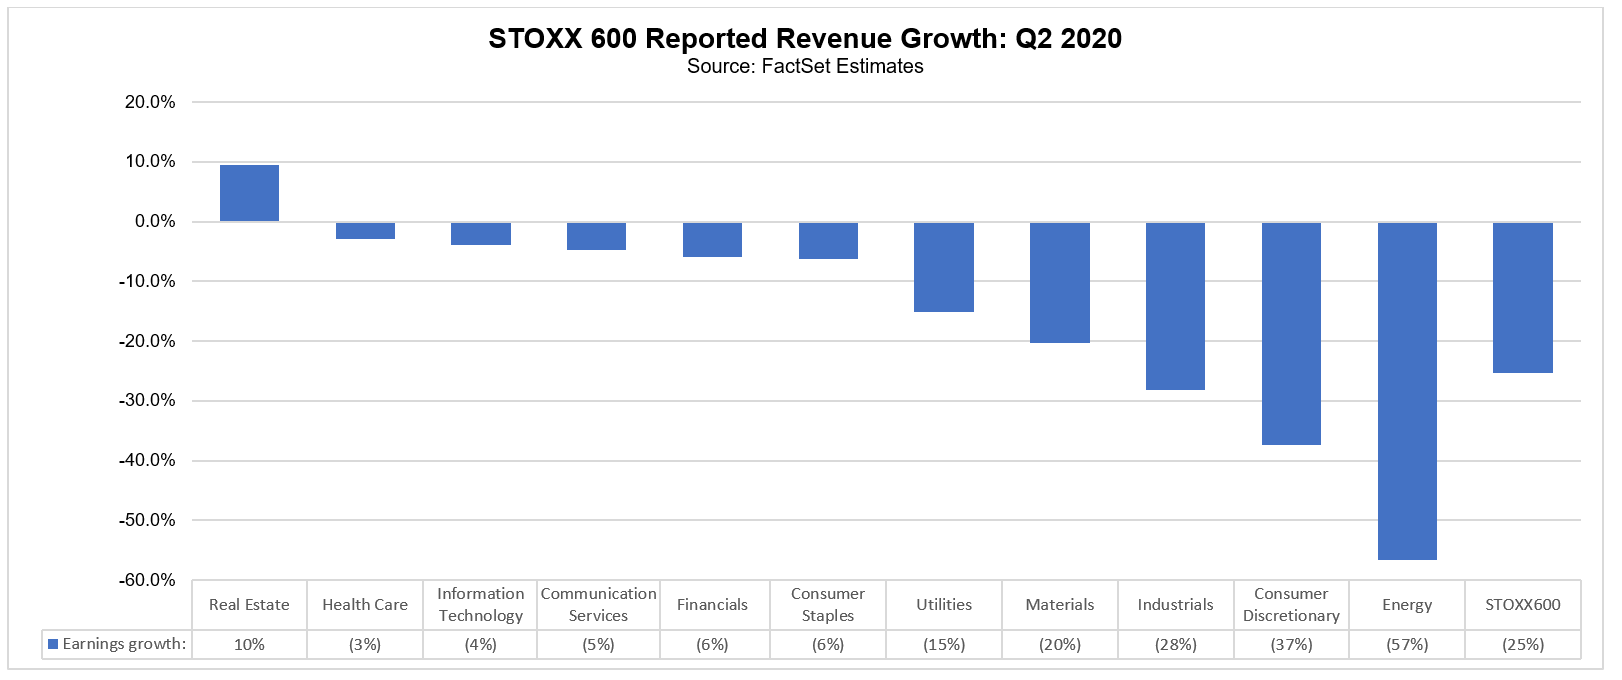 STOXX 600 reported revenue growth Q2 2020